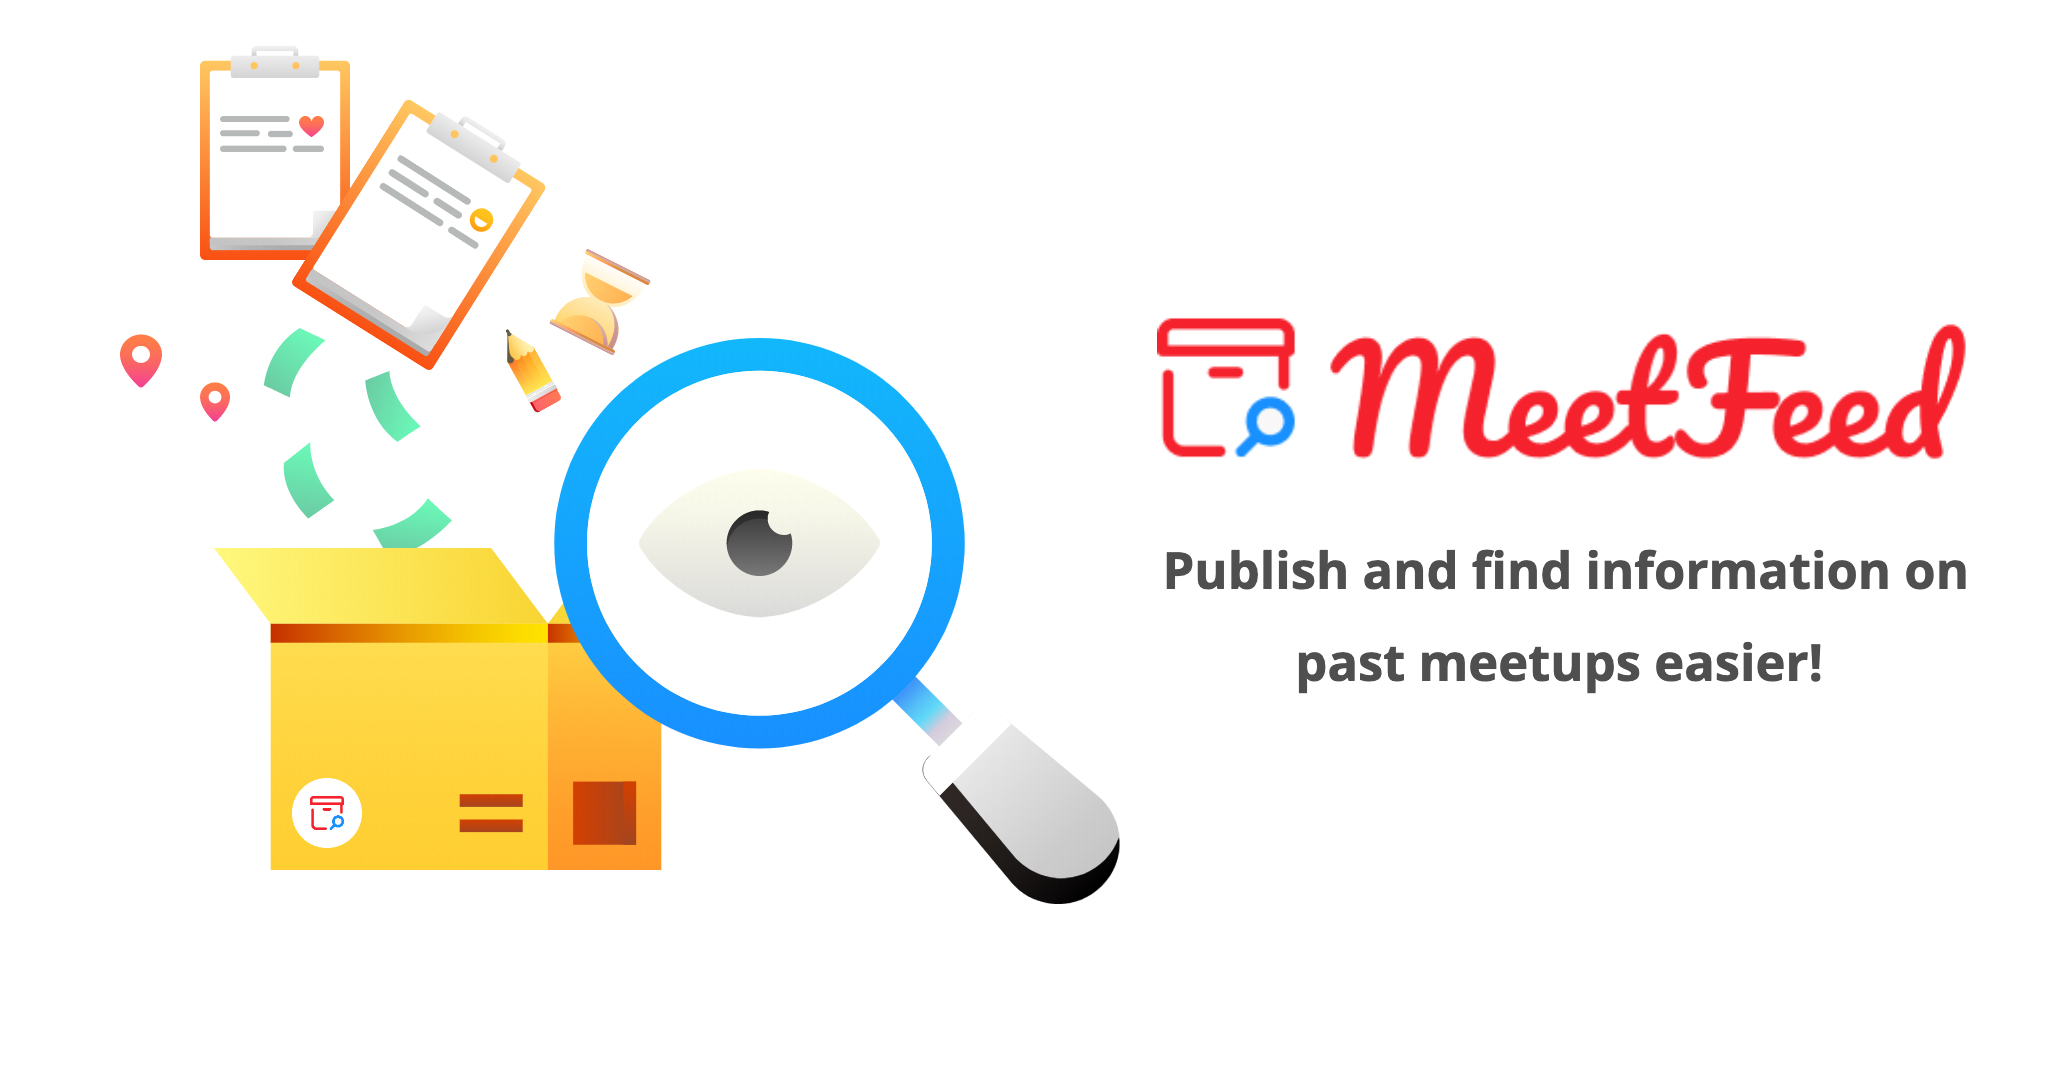 Meetfeed